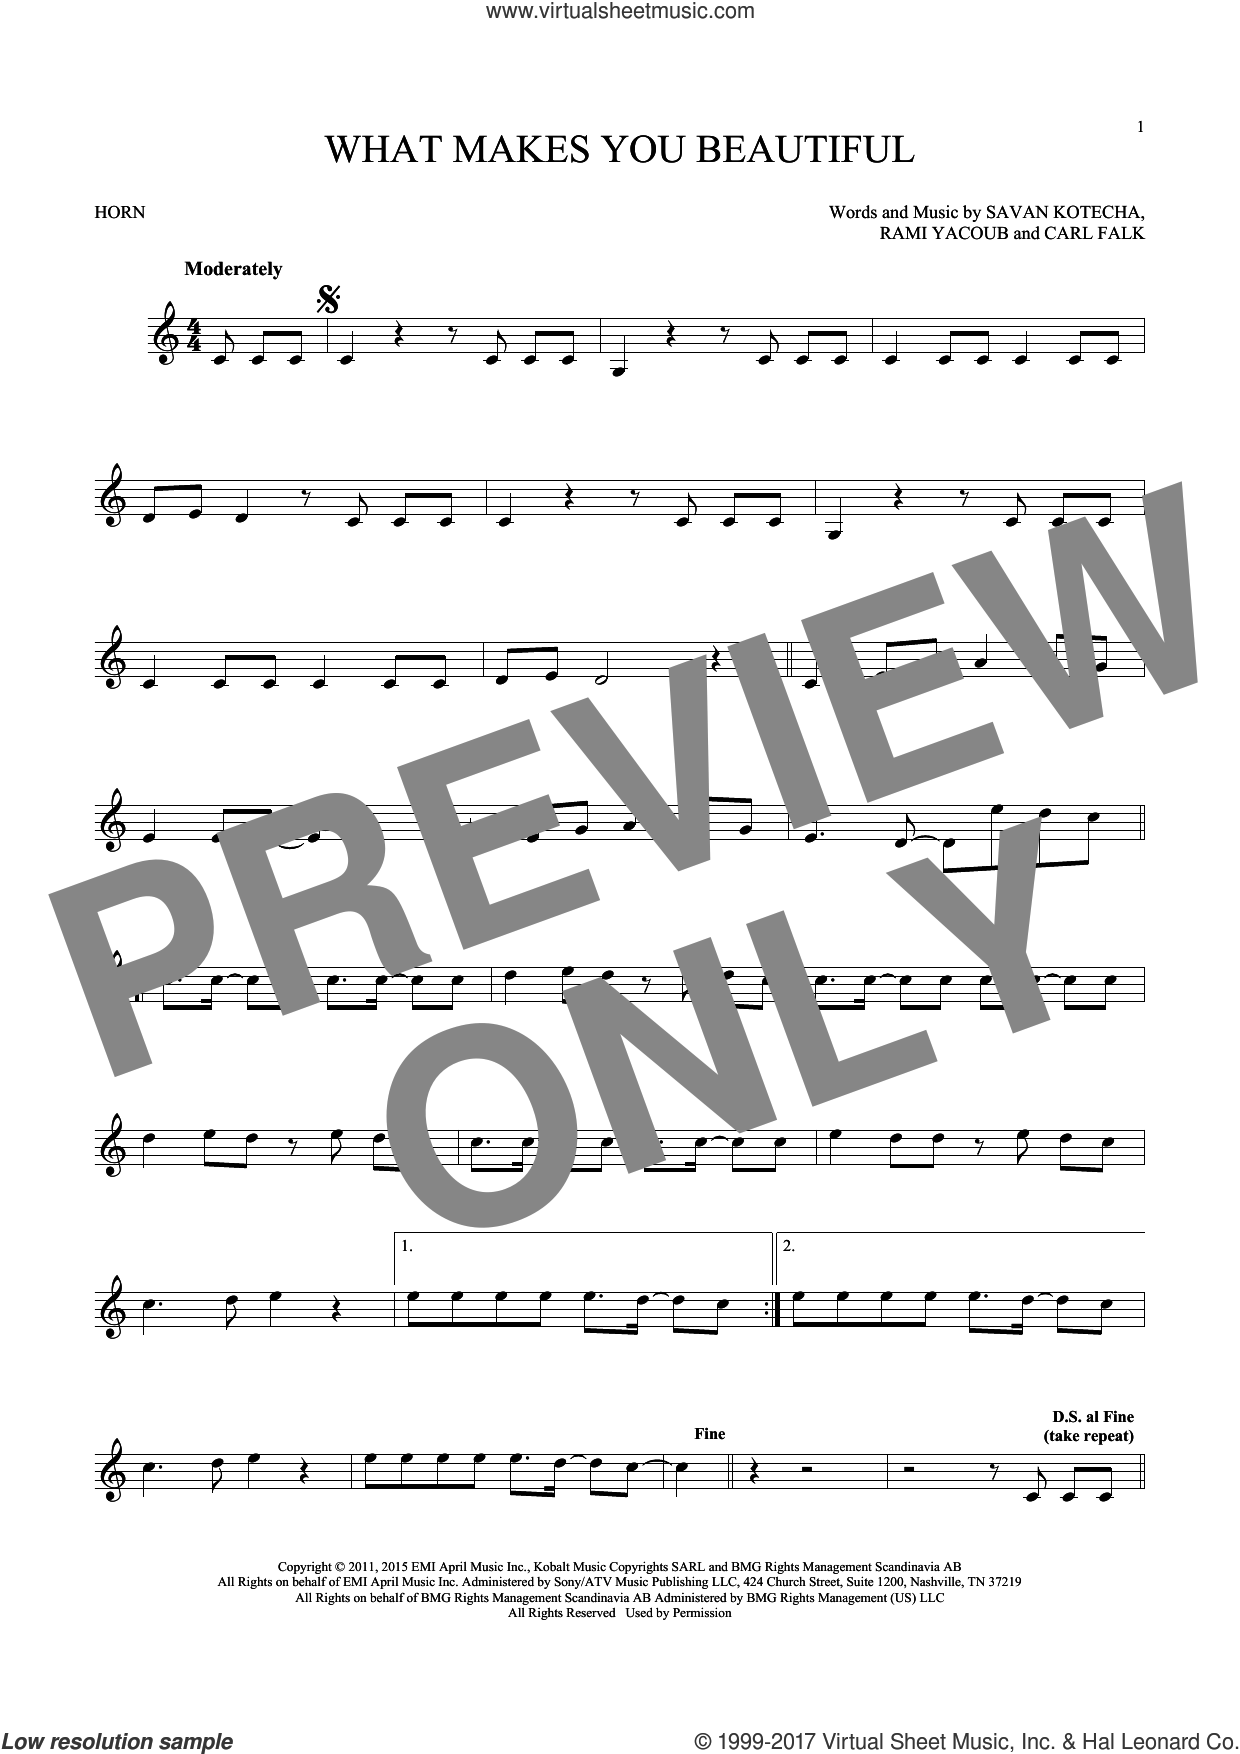 What Makes You Beautiful sheet music for horn solo by One Direction, Carl Falk and Savan Kotecha, intermediate skill level